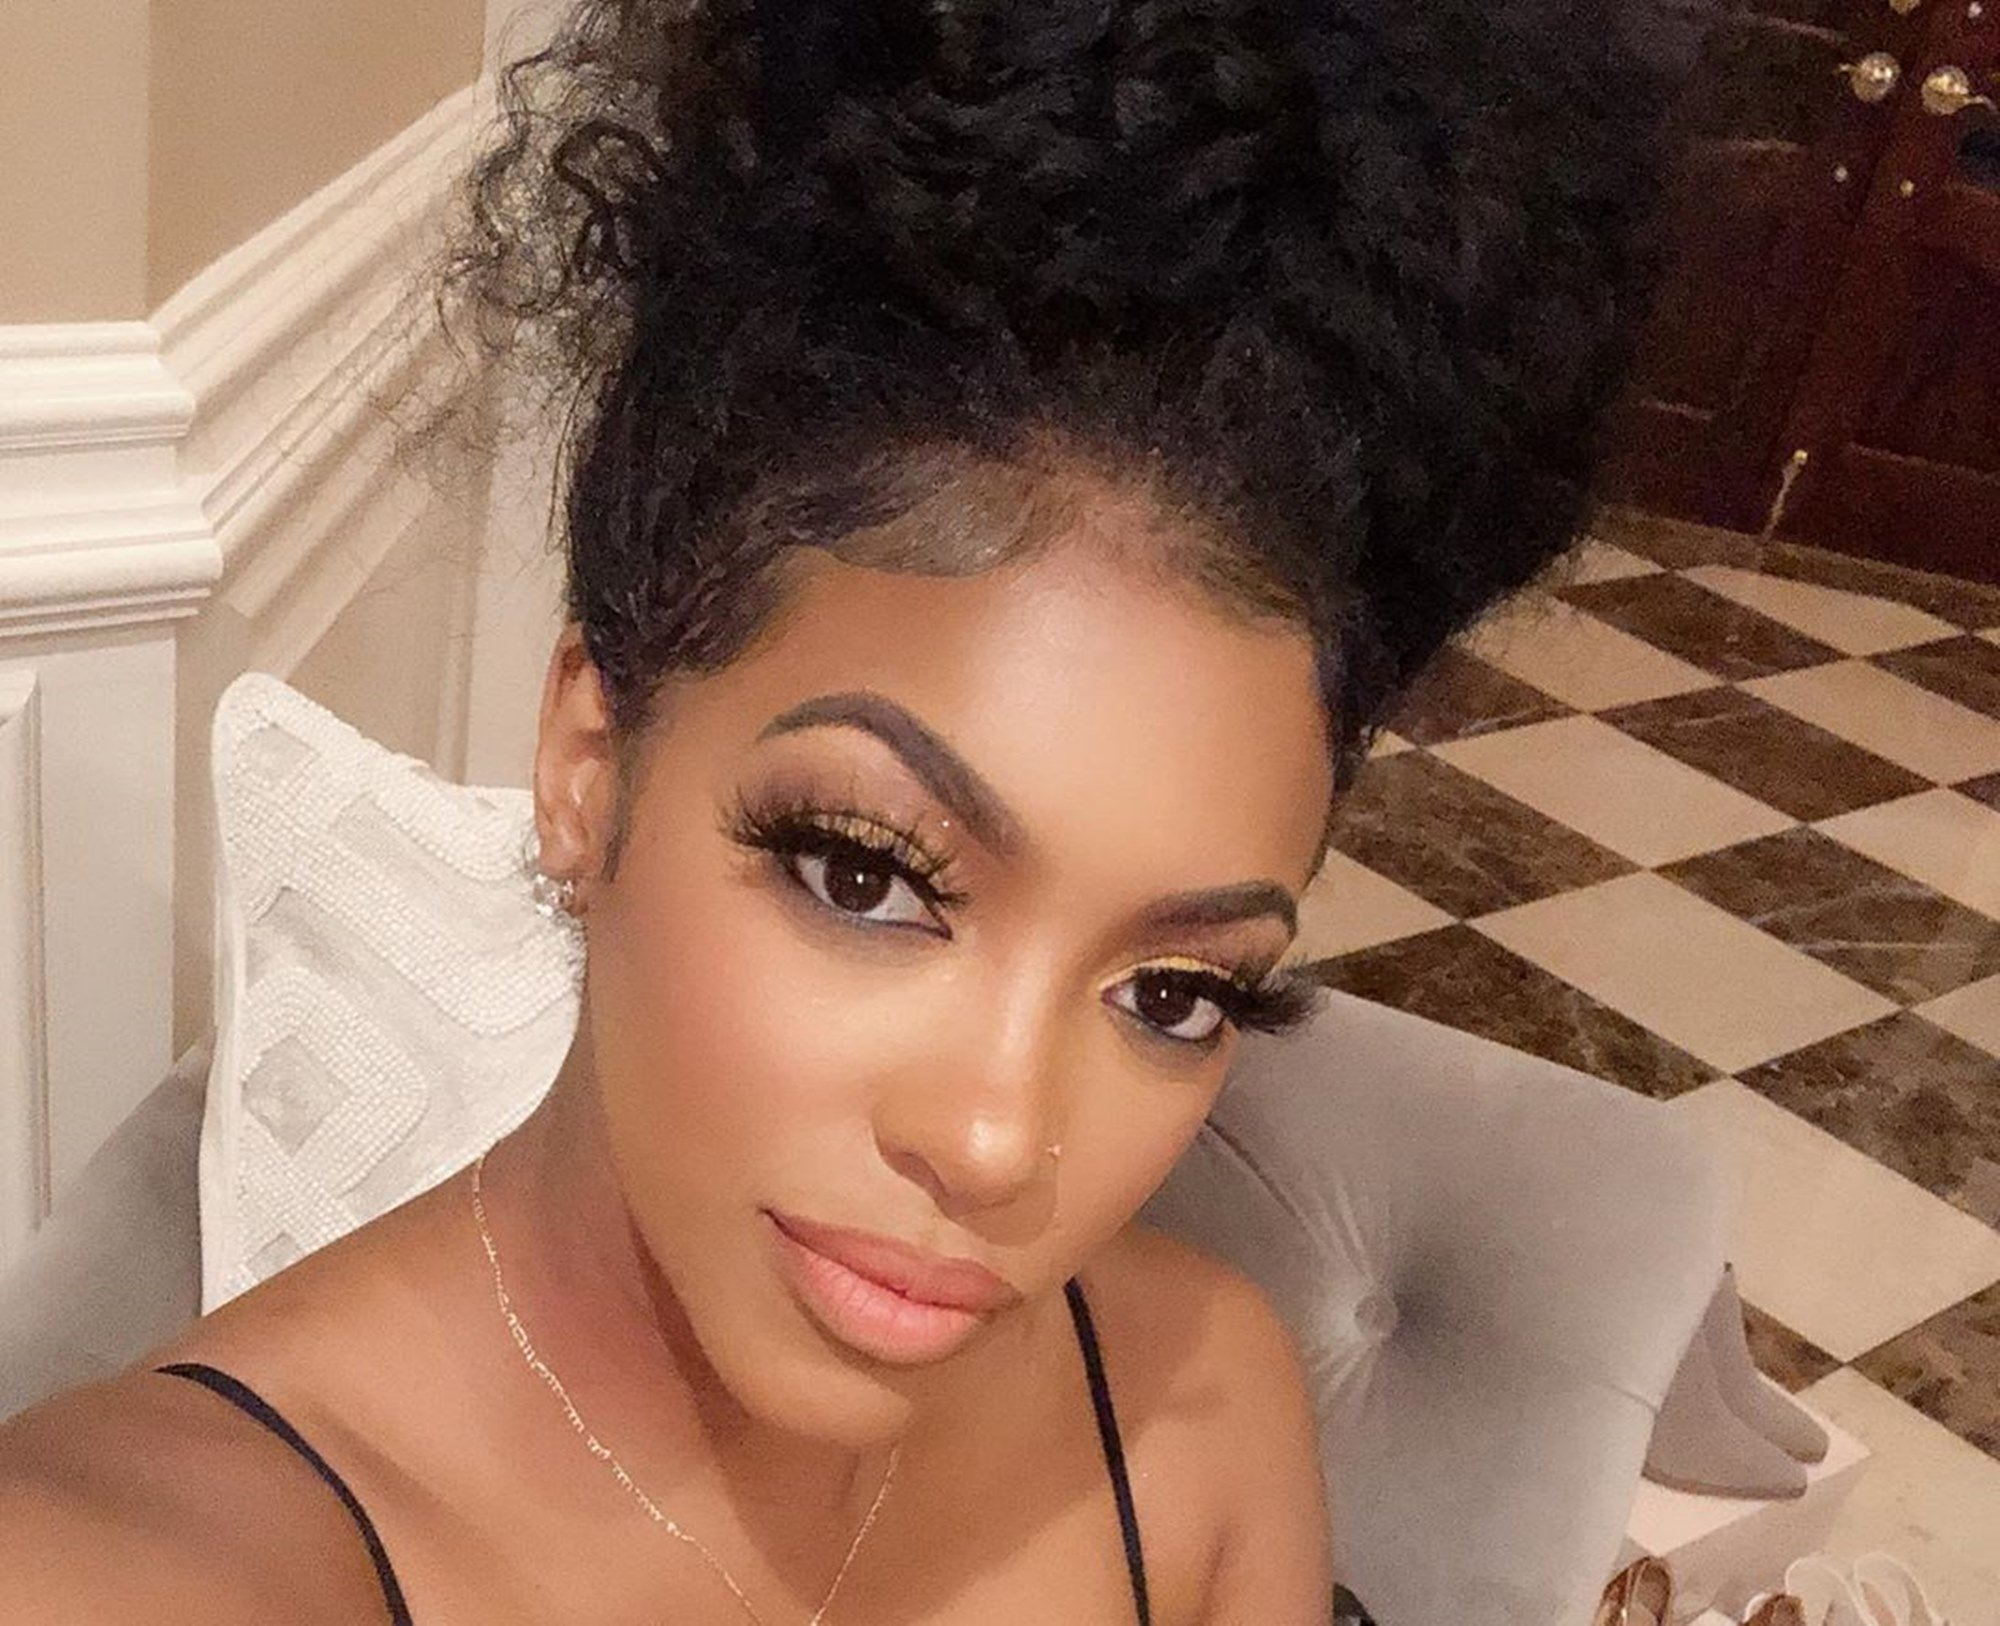 Porsha Williams Made Fans Smile With This Video